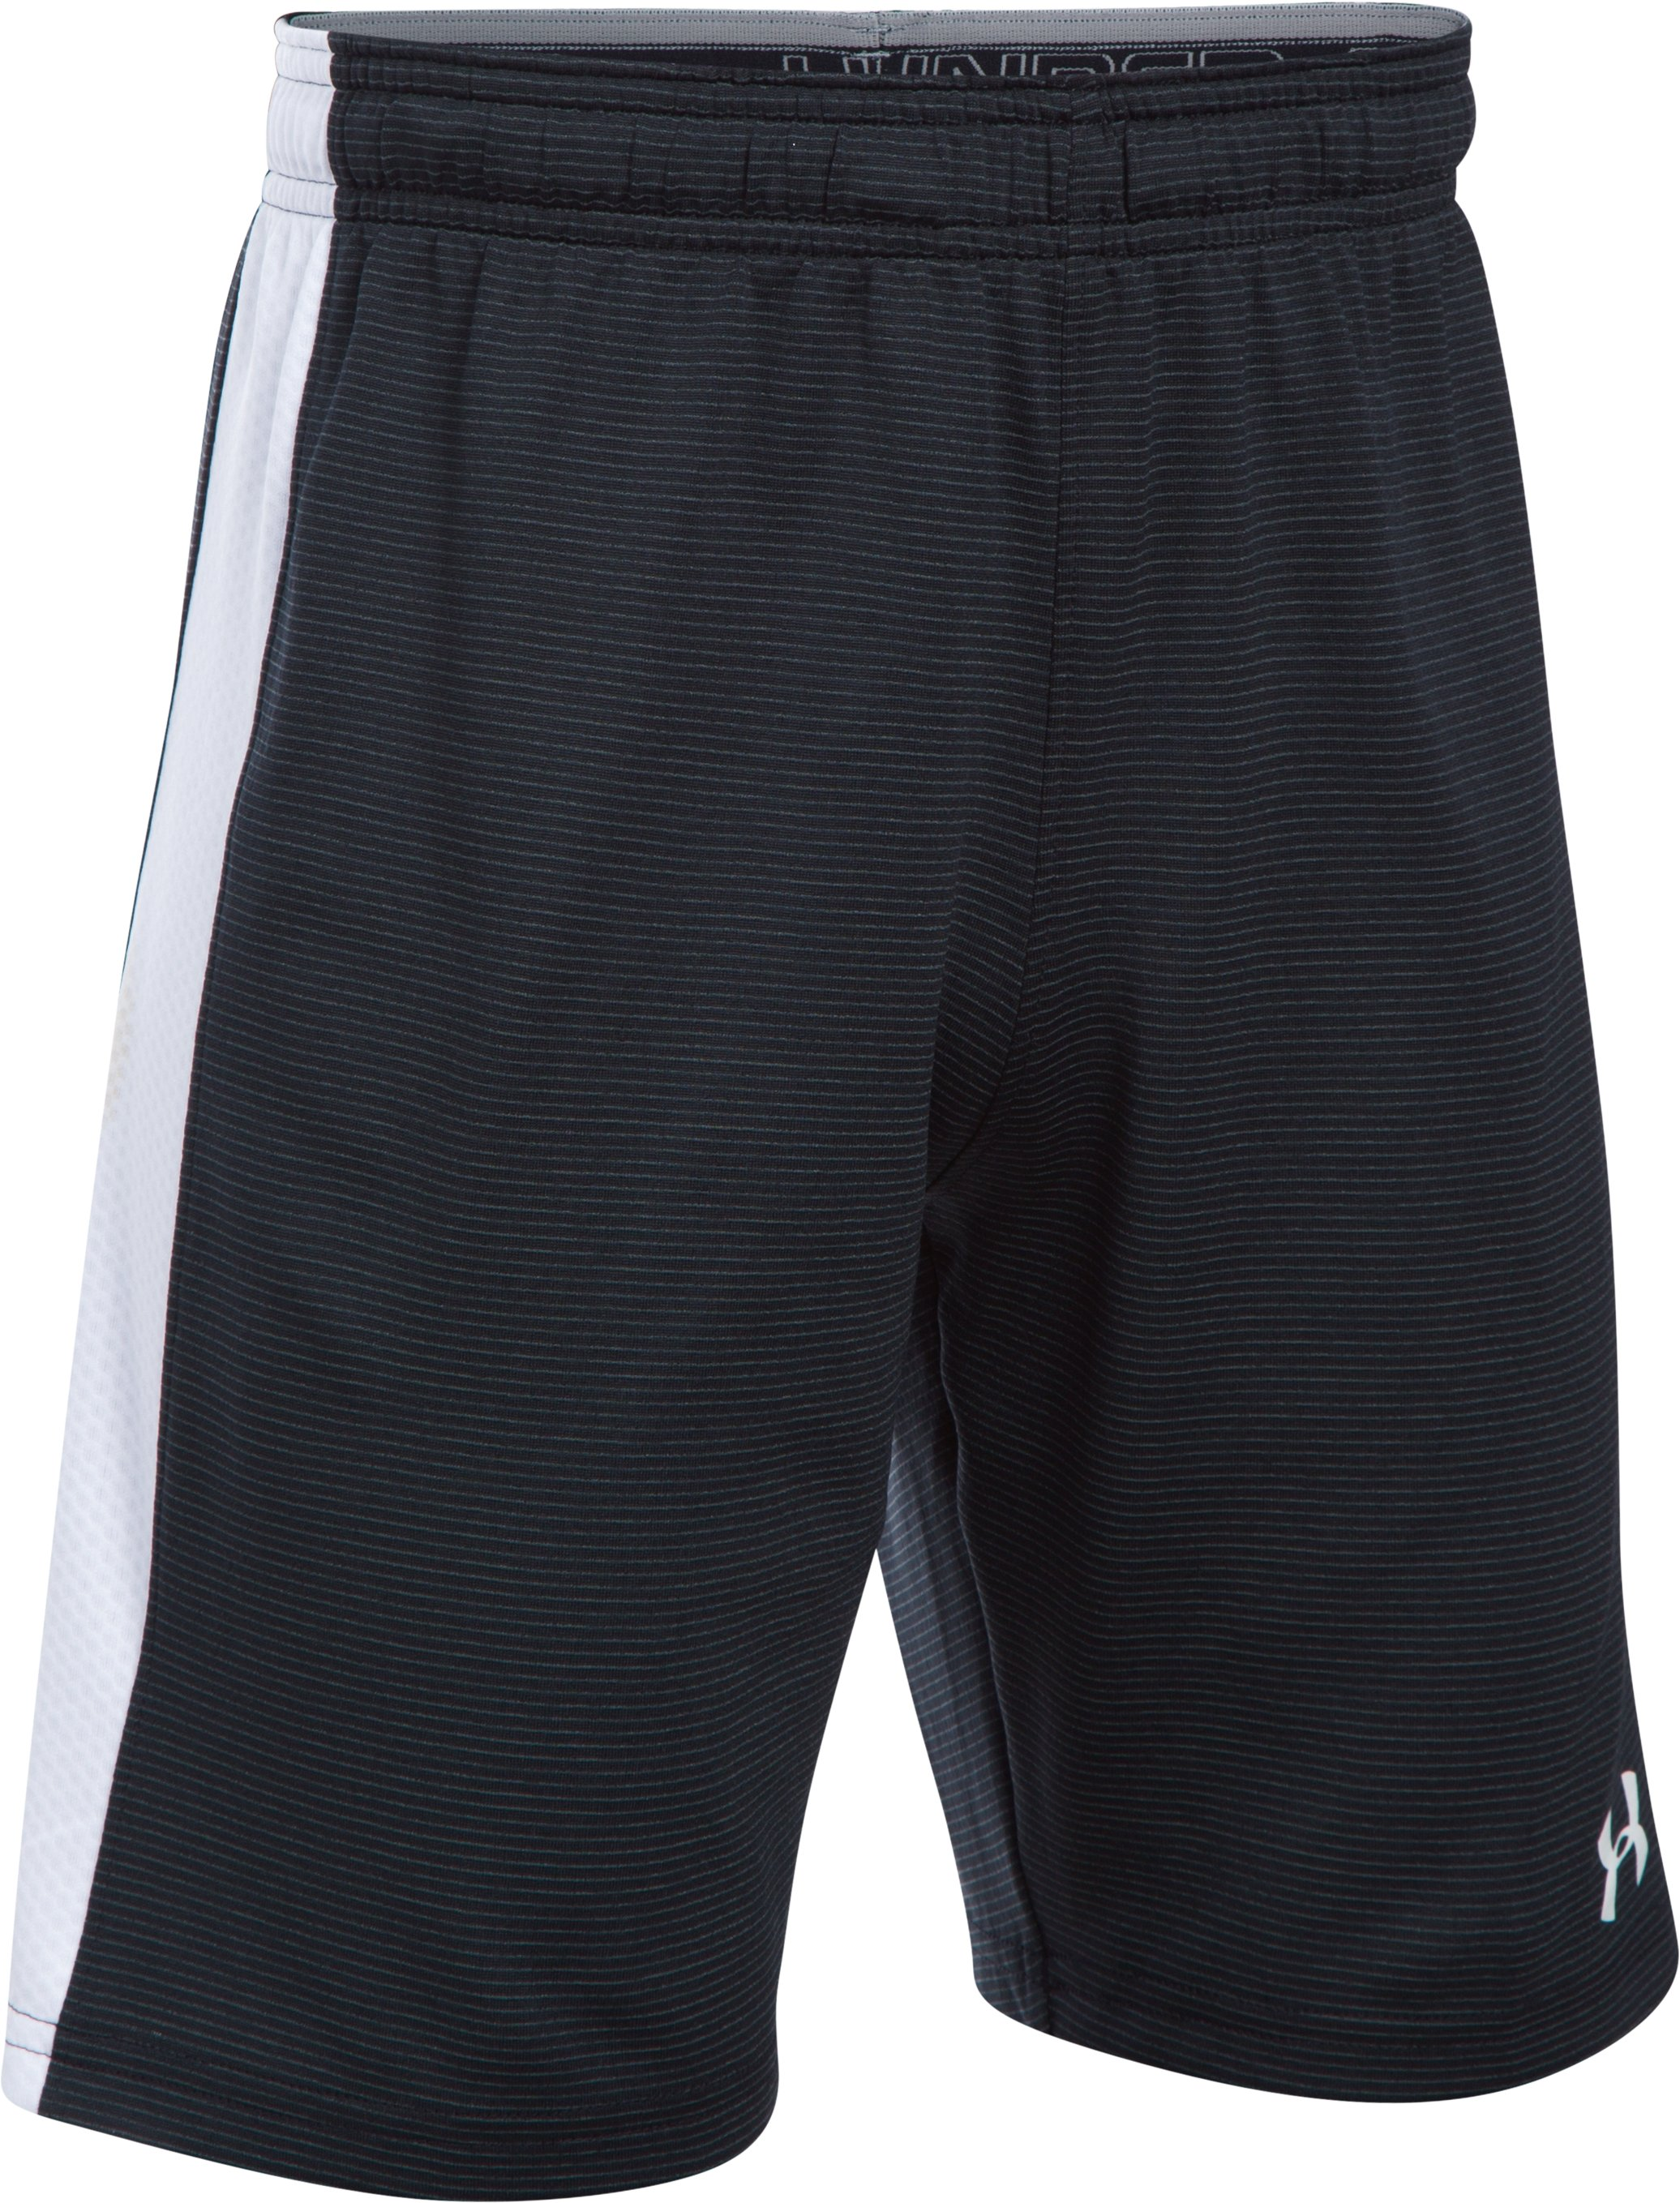 Boys' UA Threadborne Match Shorts, Black ,